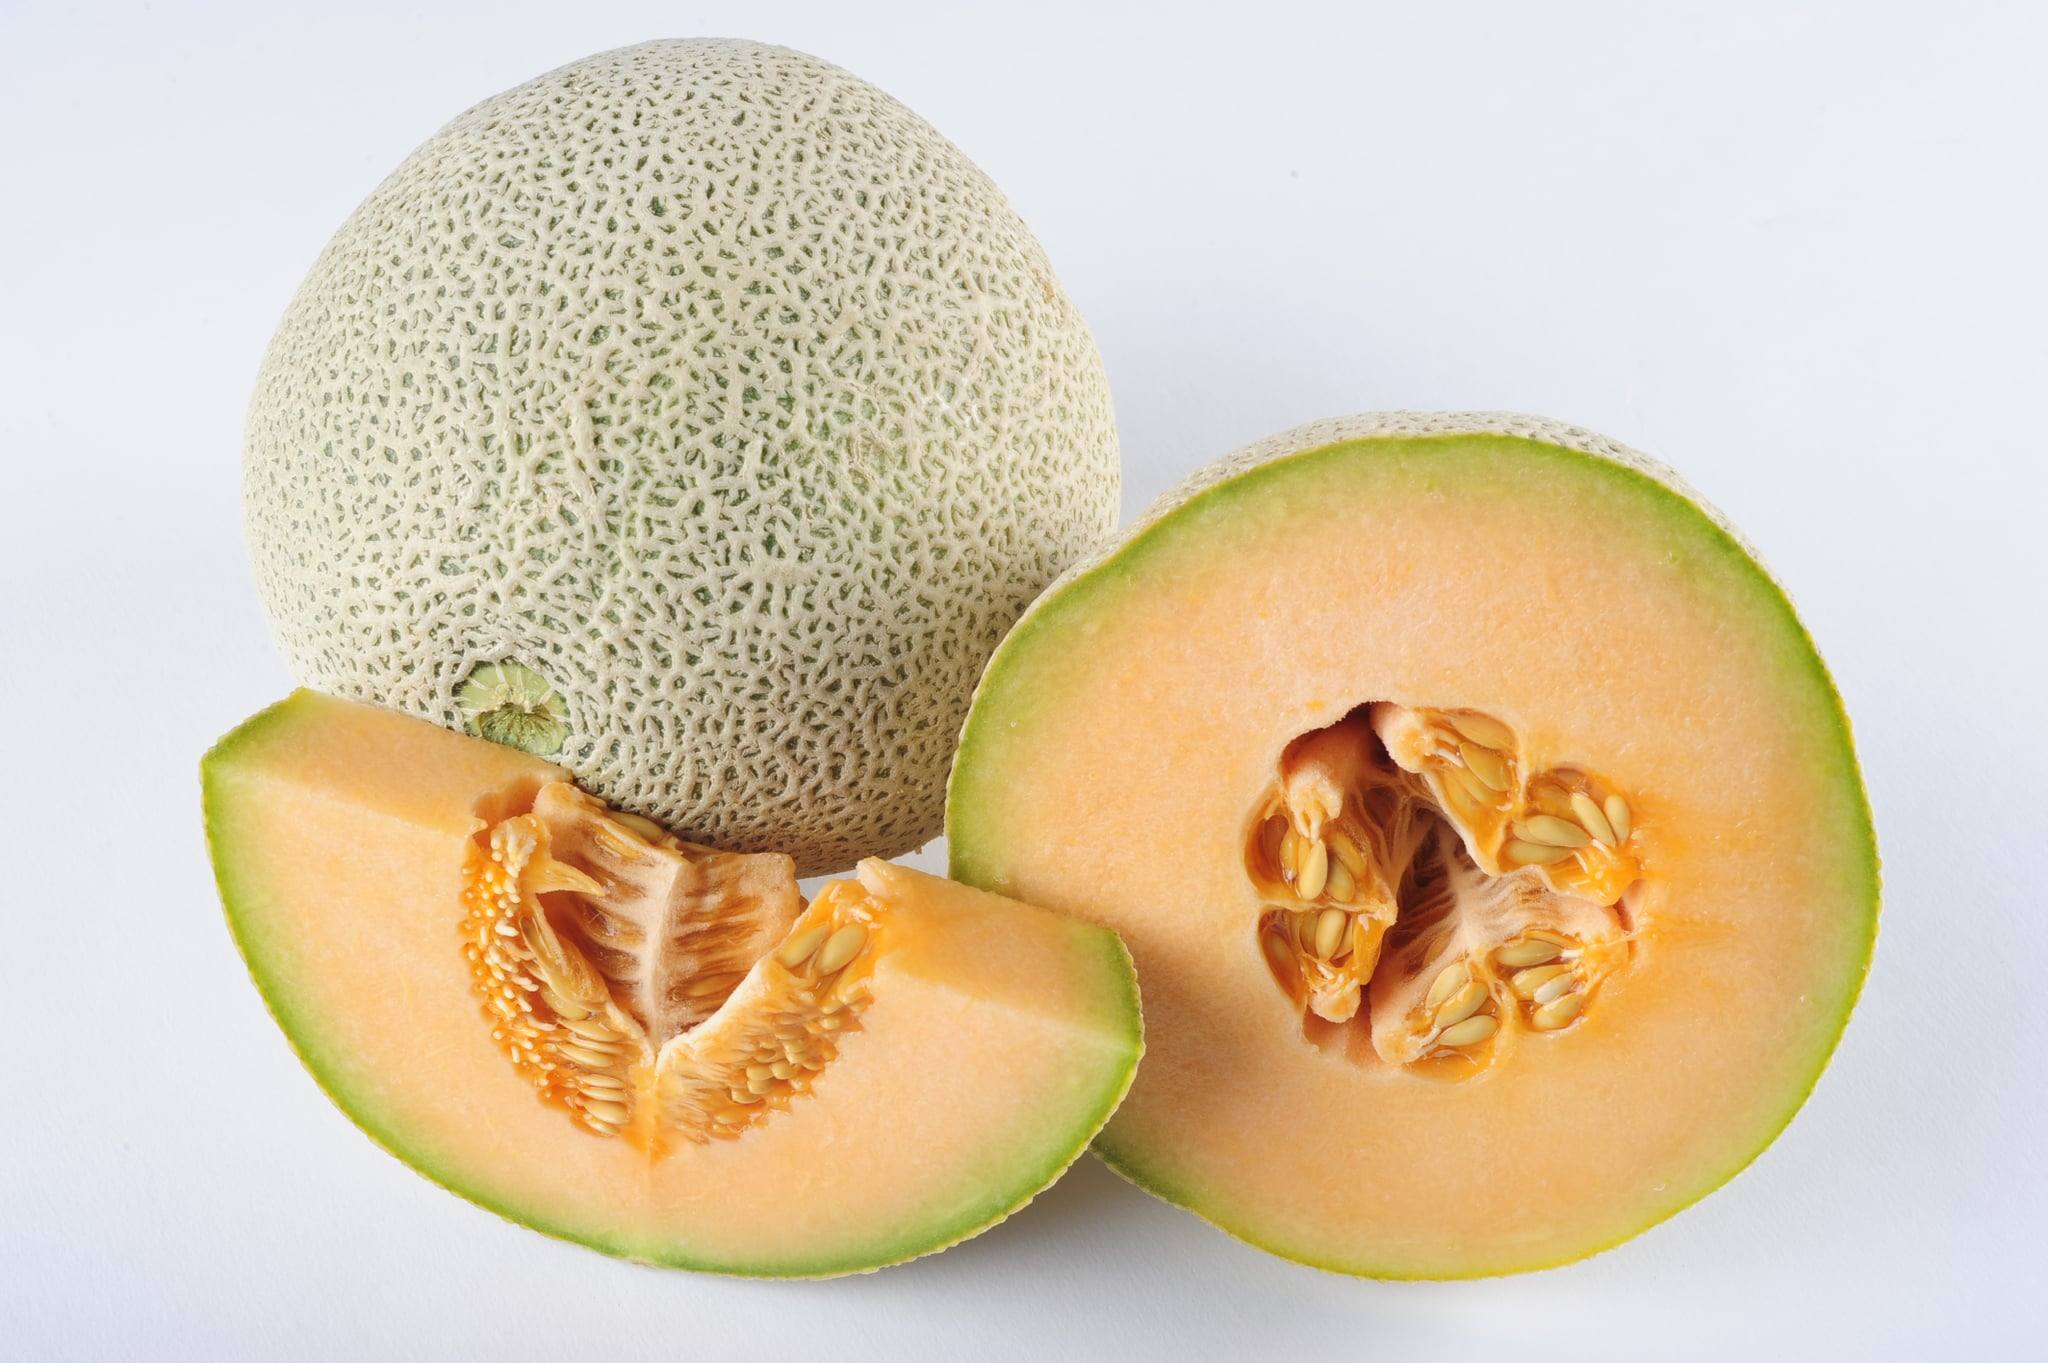 Cantaloupe Low Carb Fruit Popsugar Fitness Uk Photo 4 Which dairy products are safe for your keto diet? low carb fruit popsugar fitness